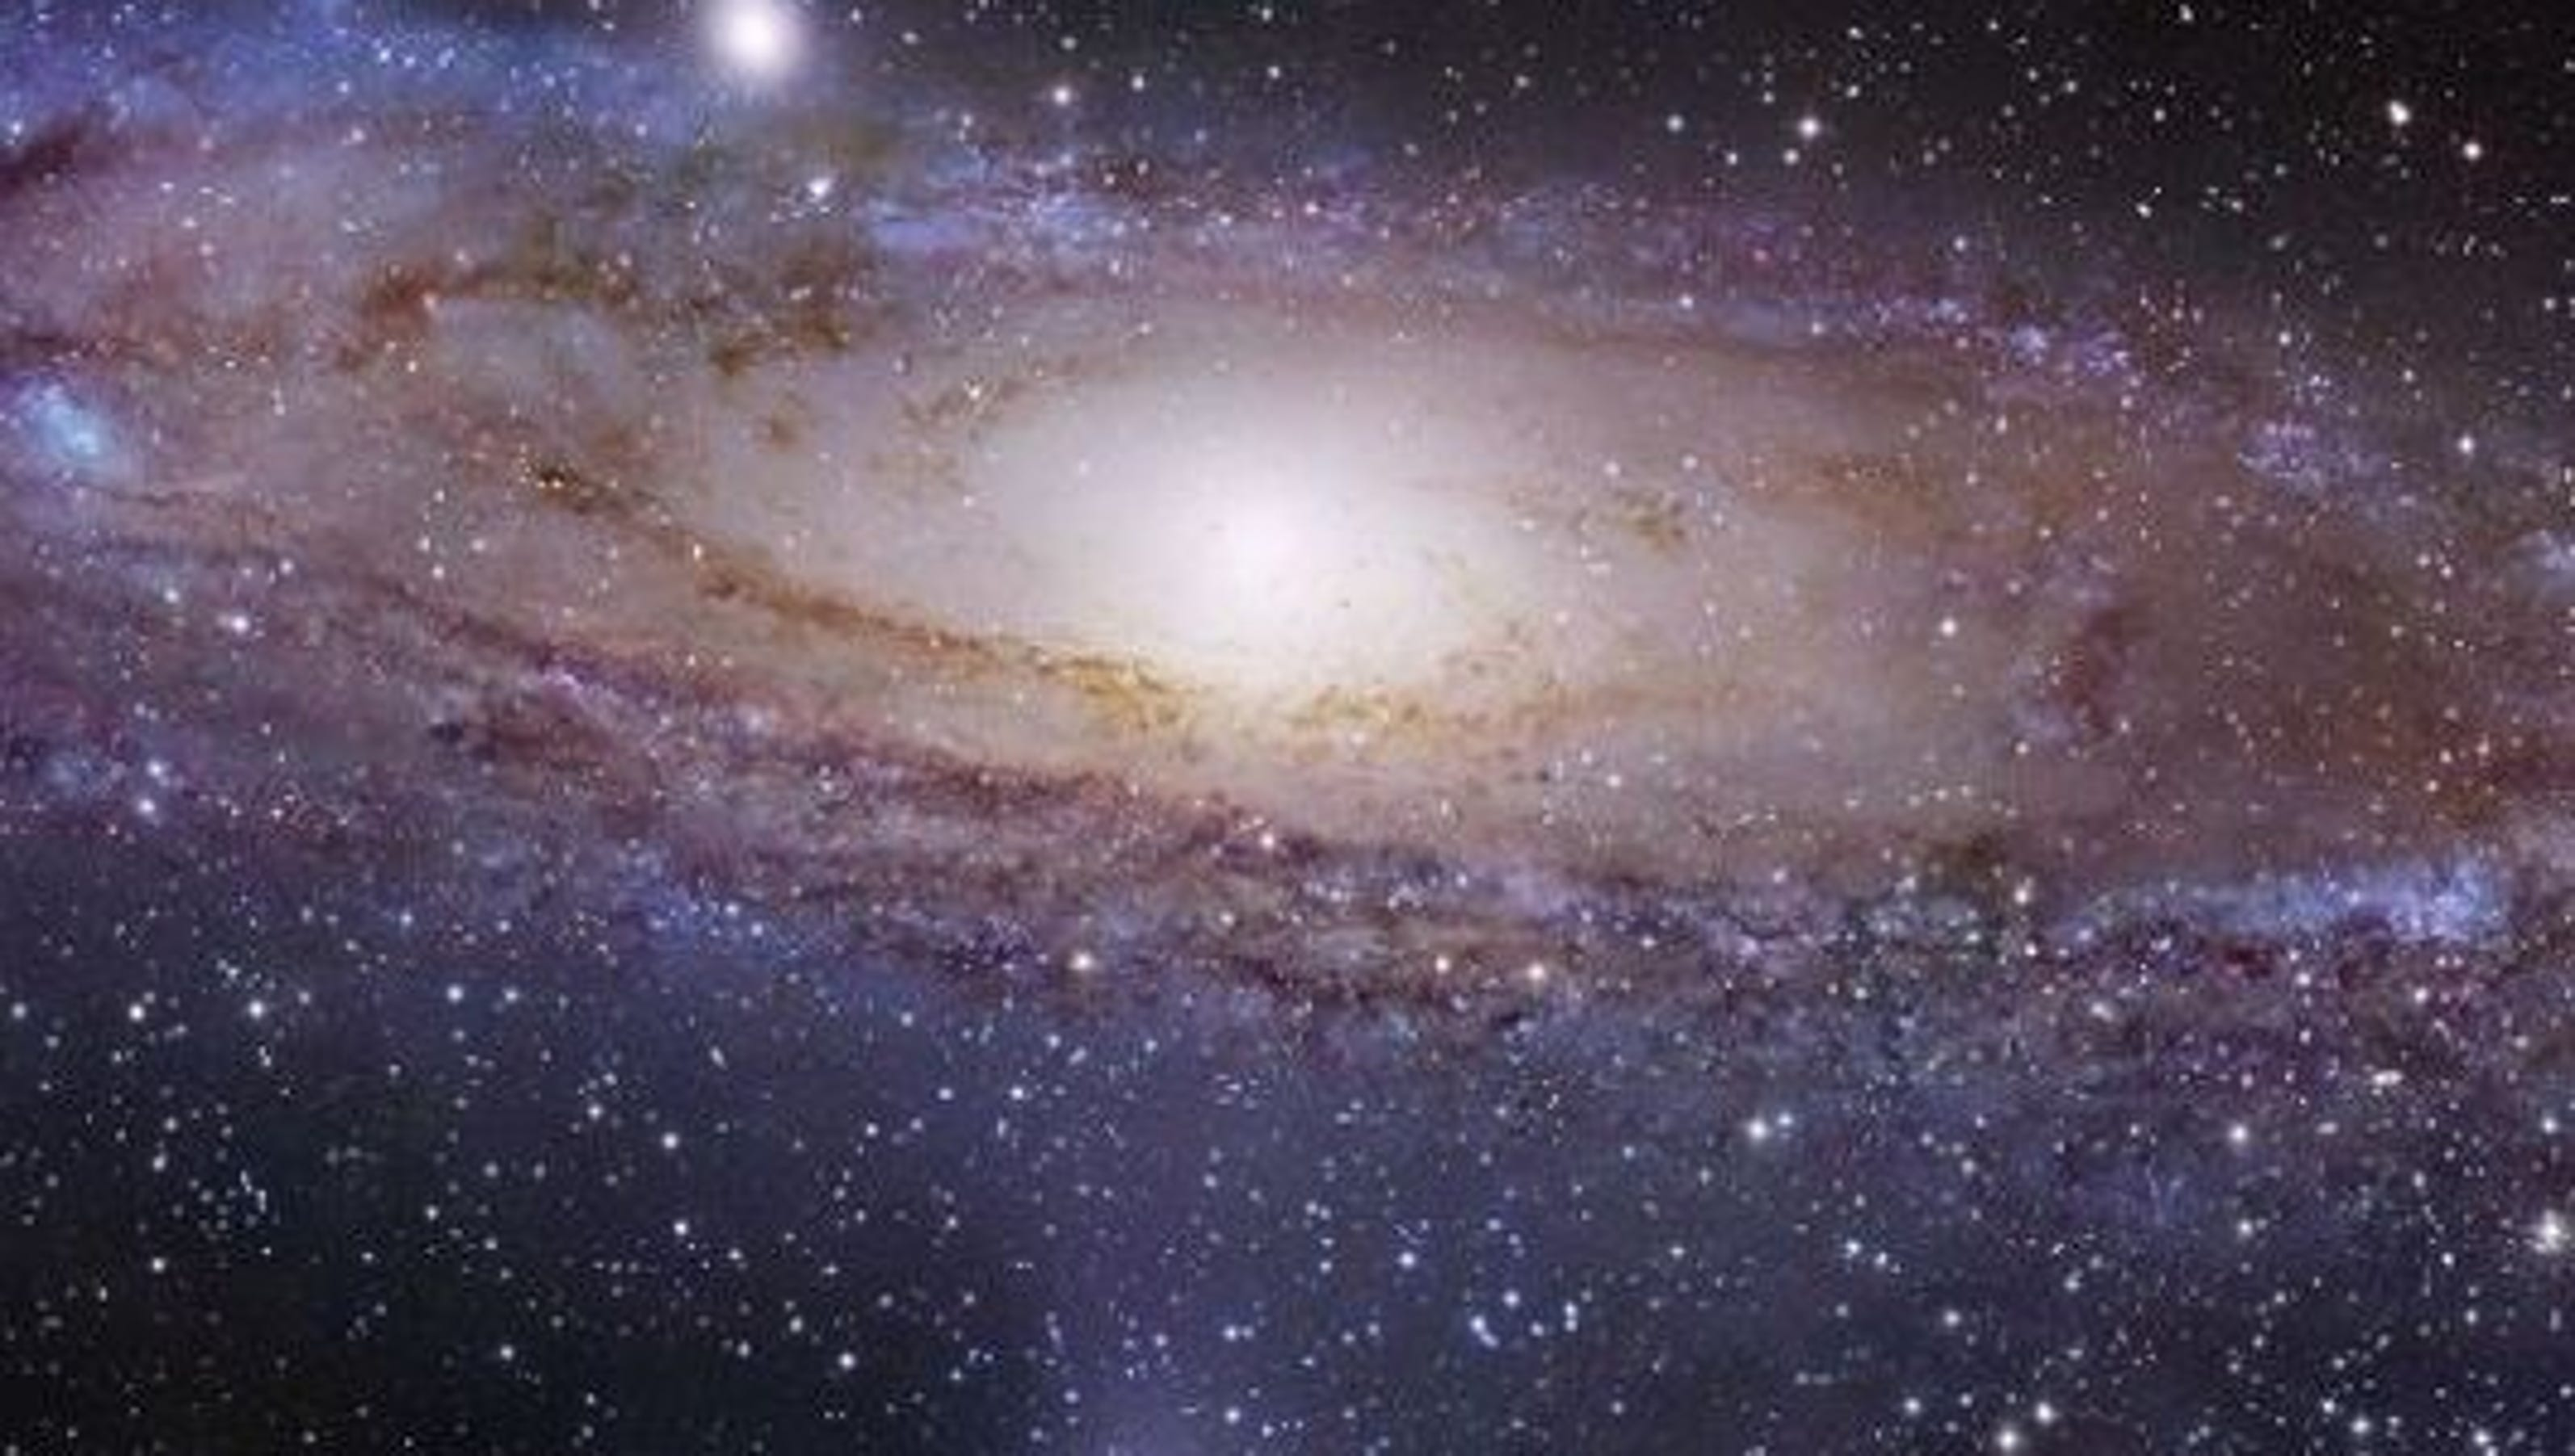 the andromeda galaxy A different astronomy and space science related image is featured each day, along with a brief explanation.